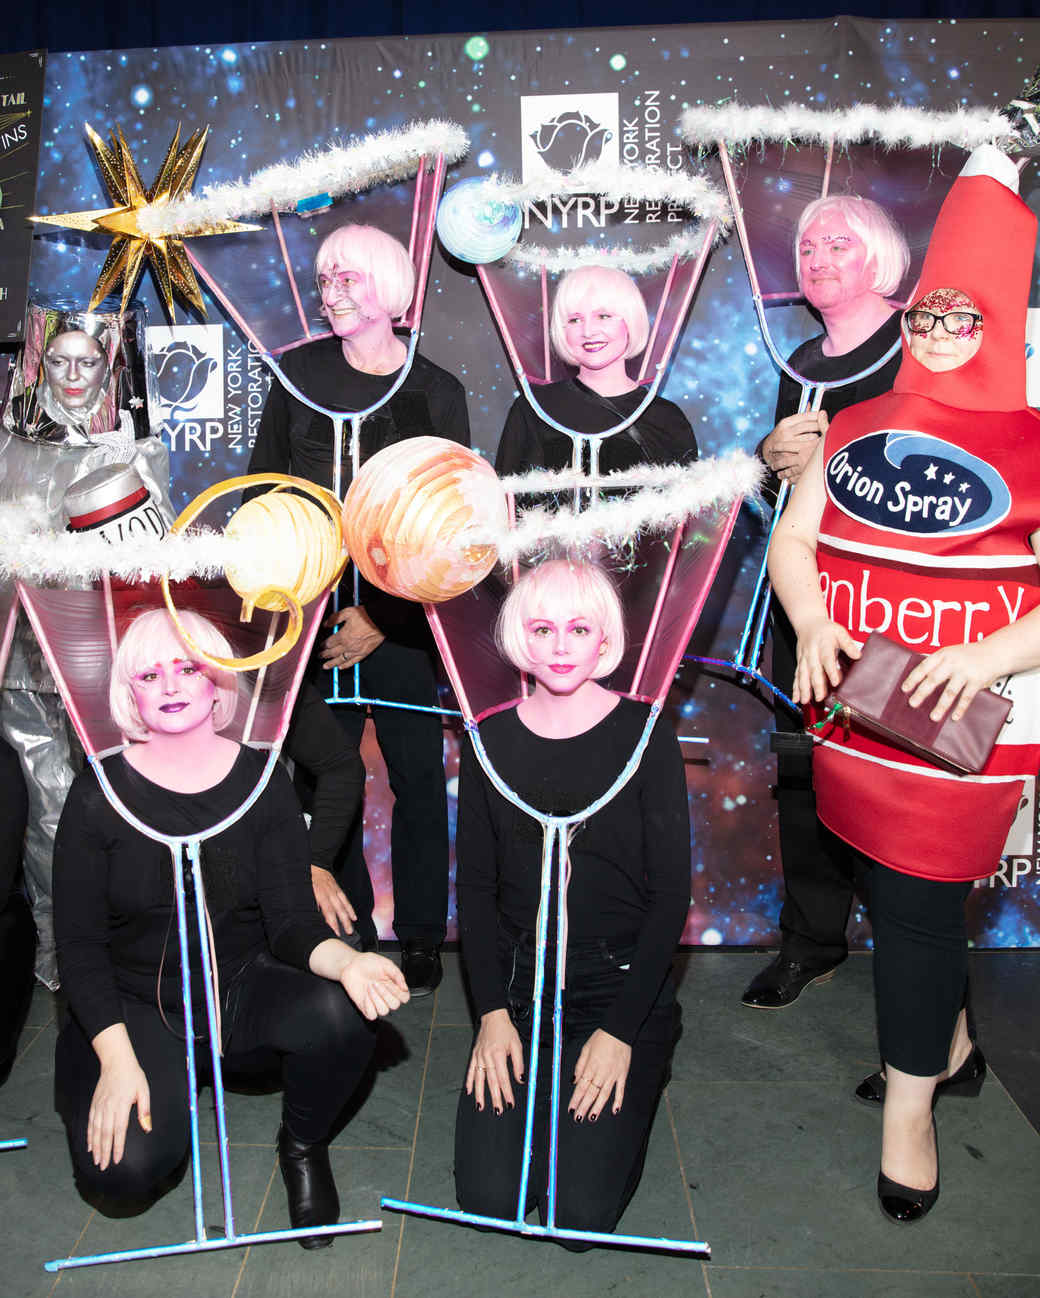 hulaween bette midler halloween costumes galaxy cocktails